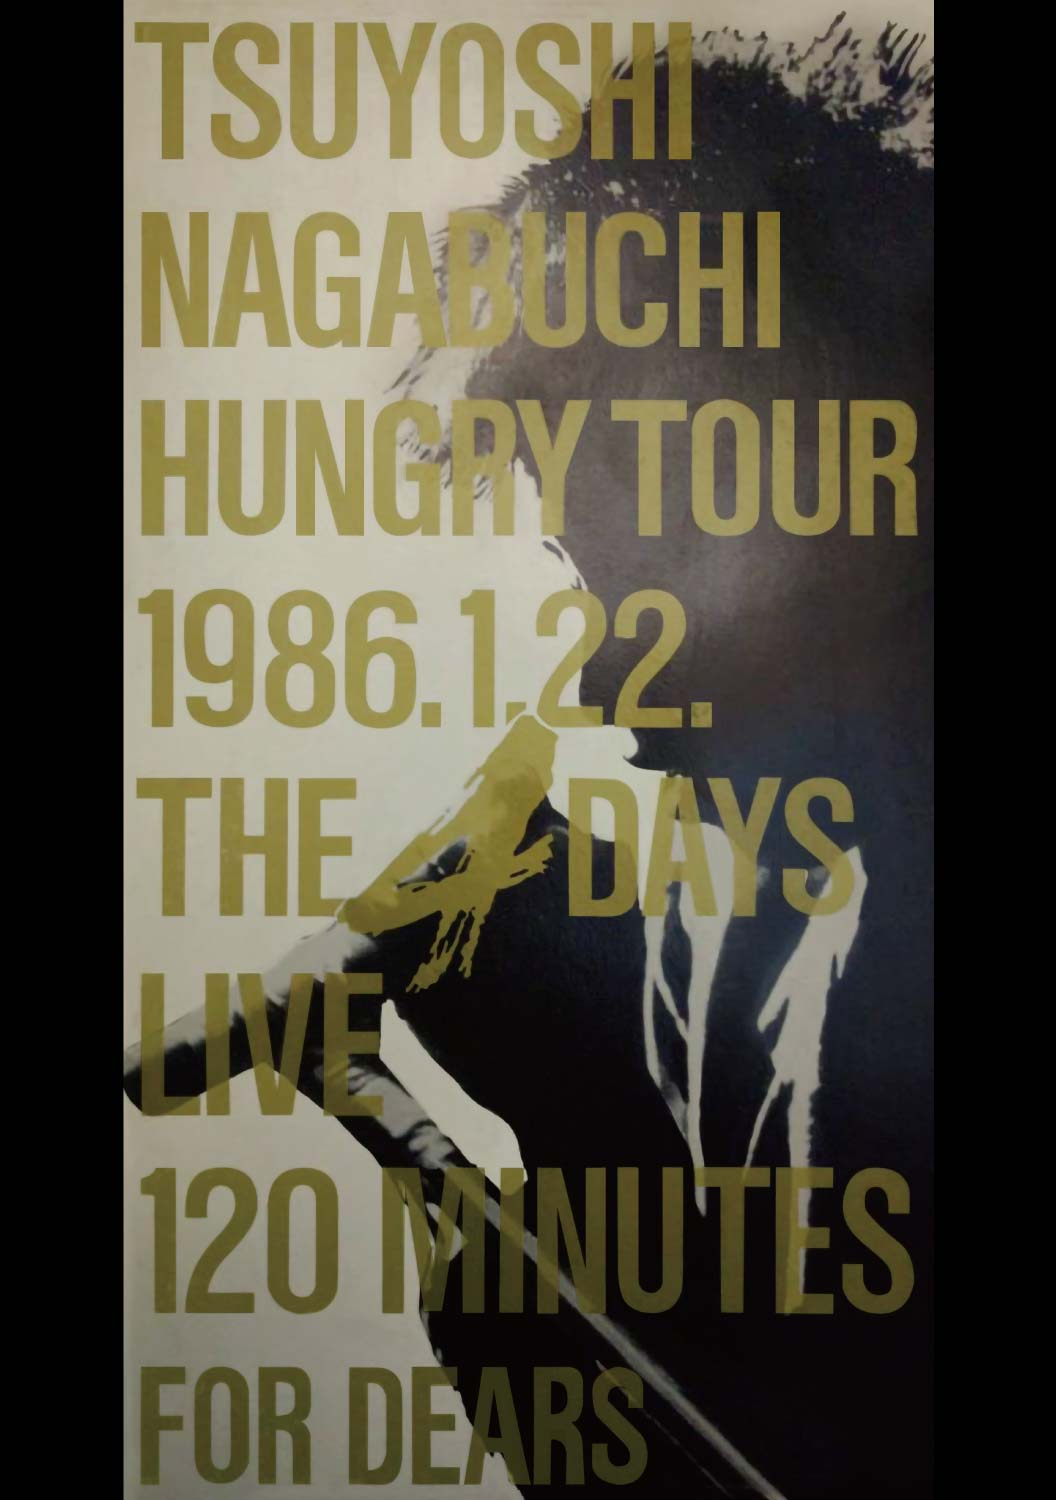 HUNGRY TOUR 1986.1.22 THE 4DAYS LIVE